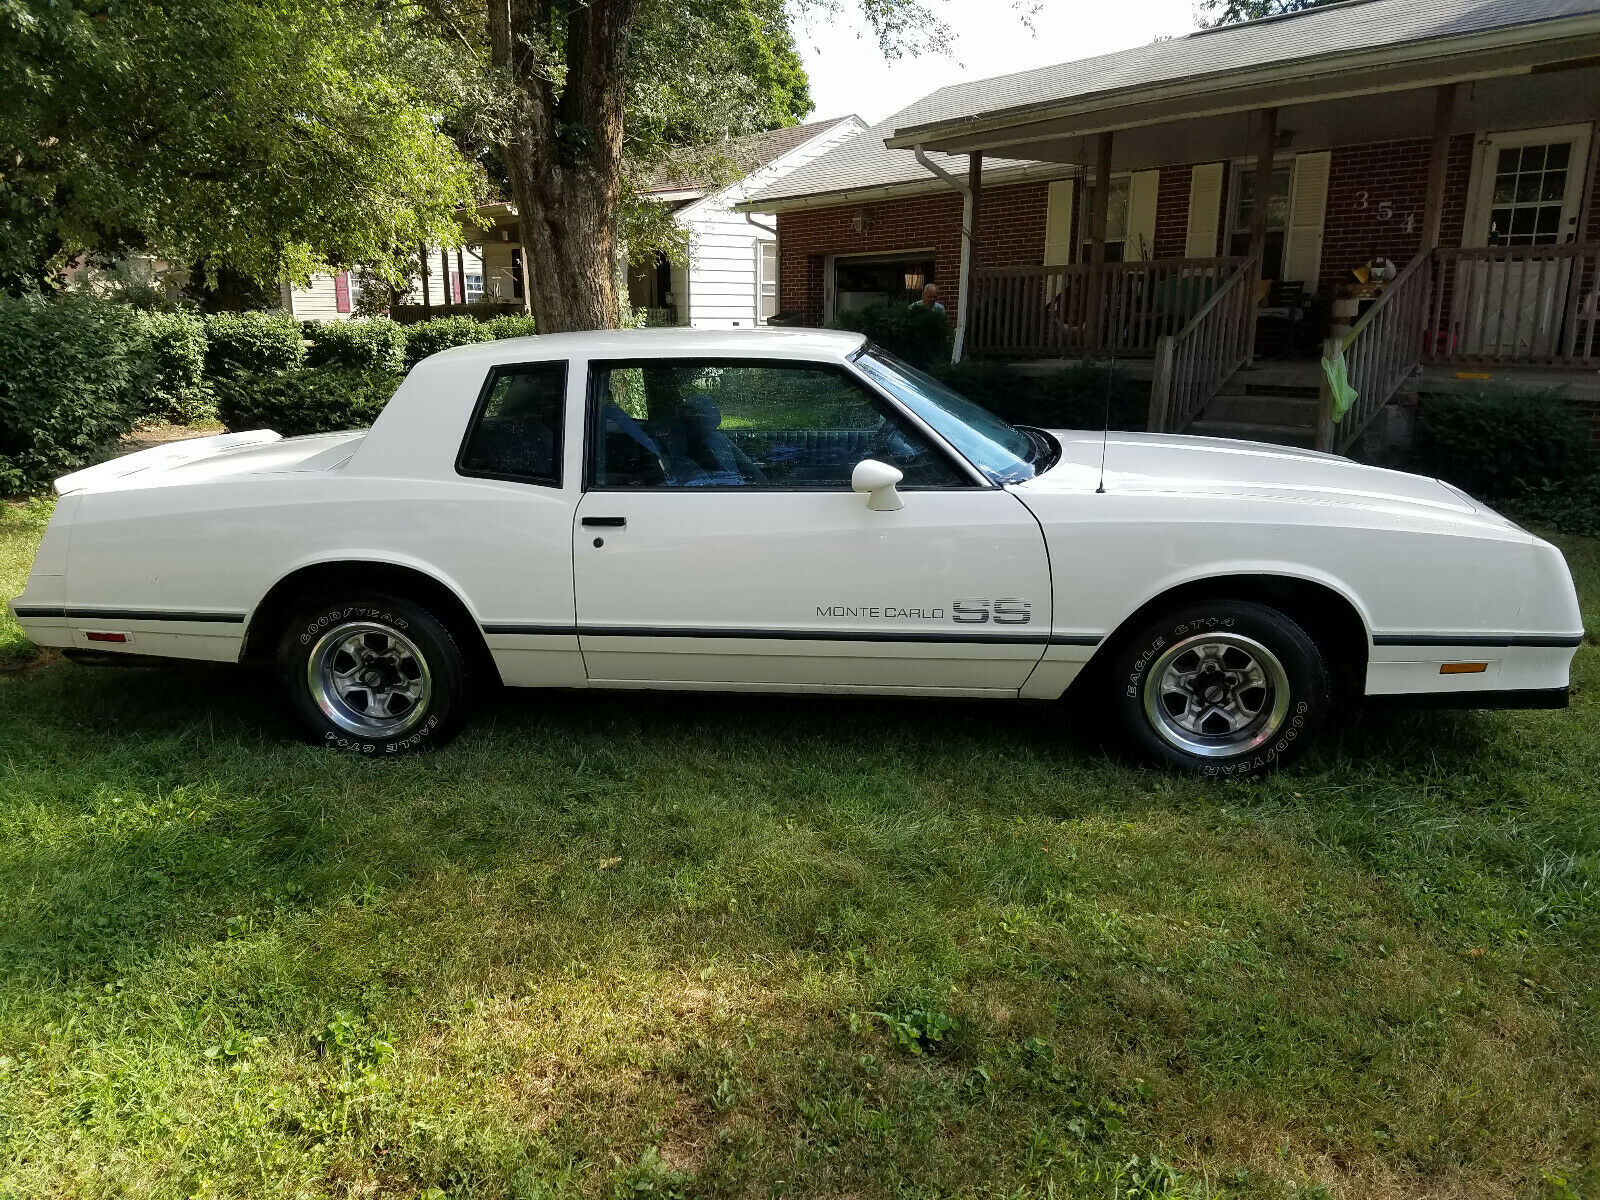 chevrolet monte carlo 1984 for sale bodywork coupe skillter com